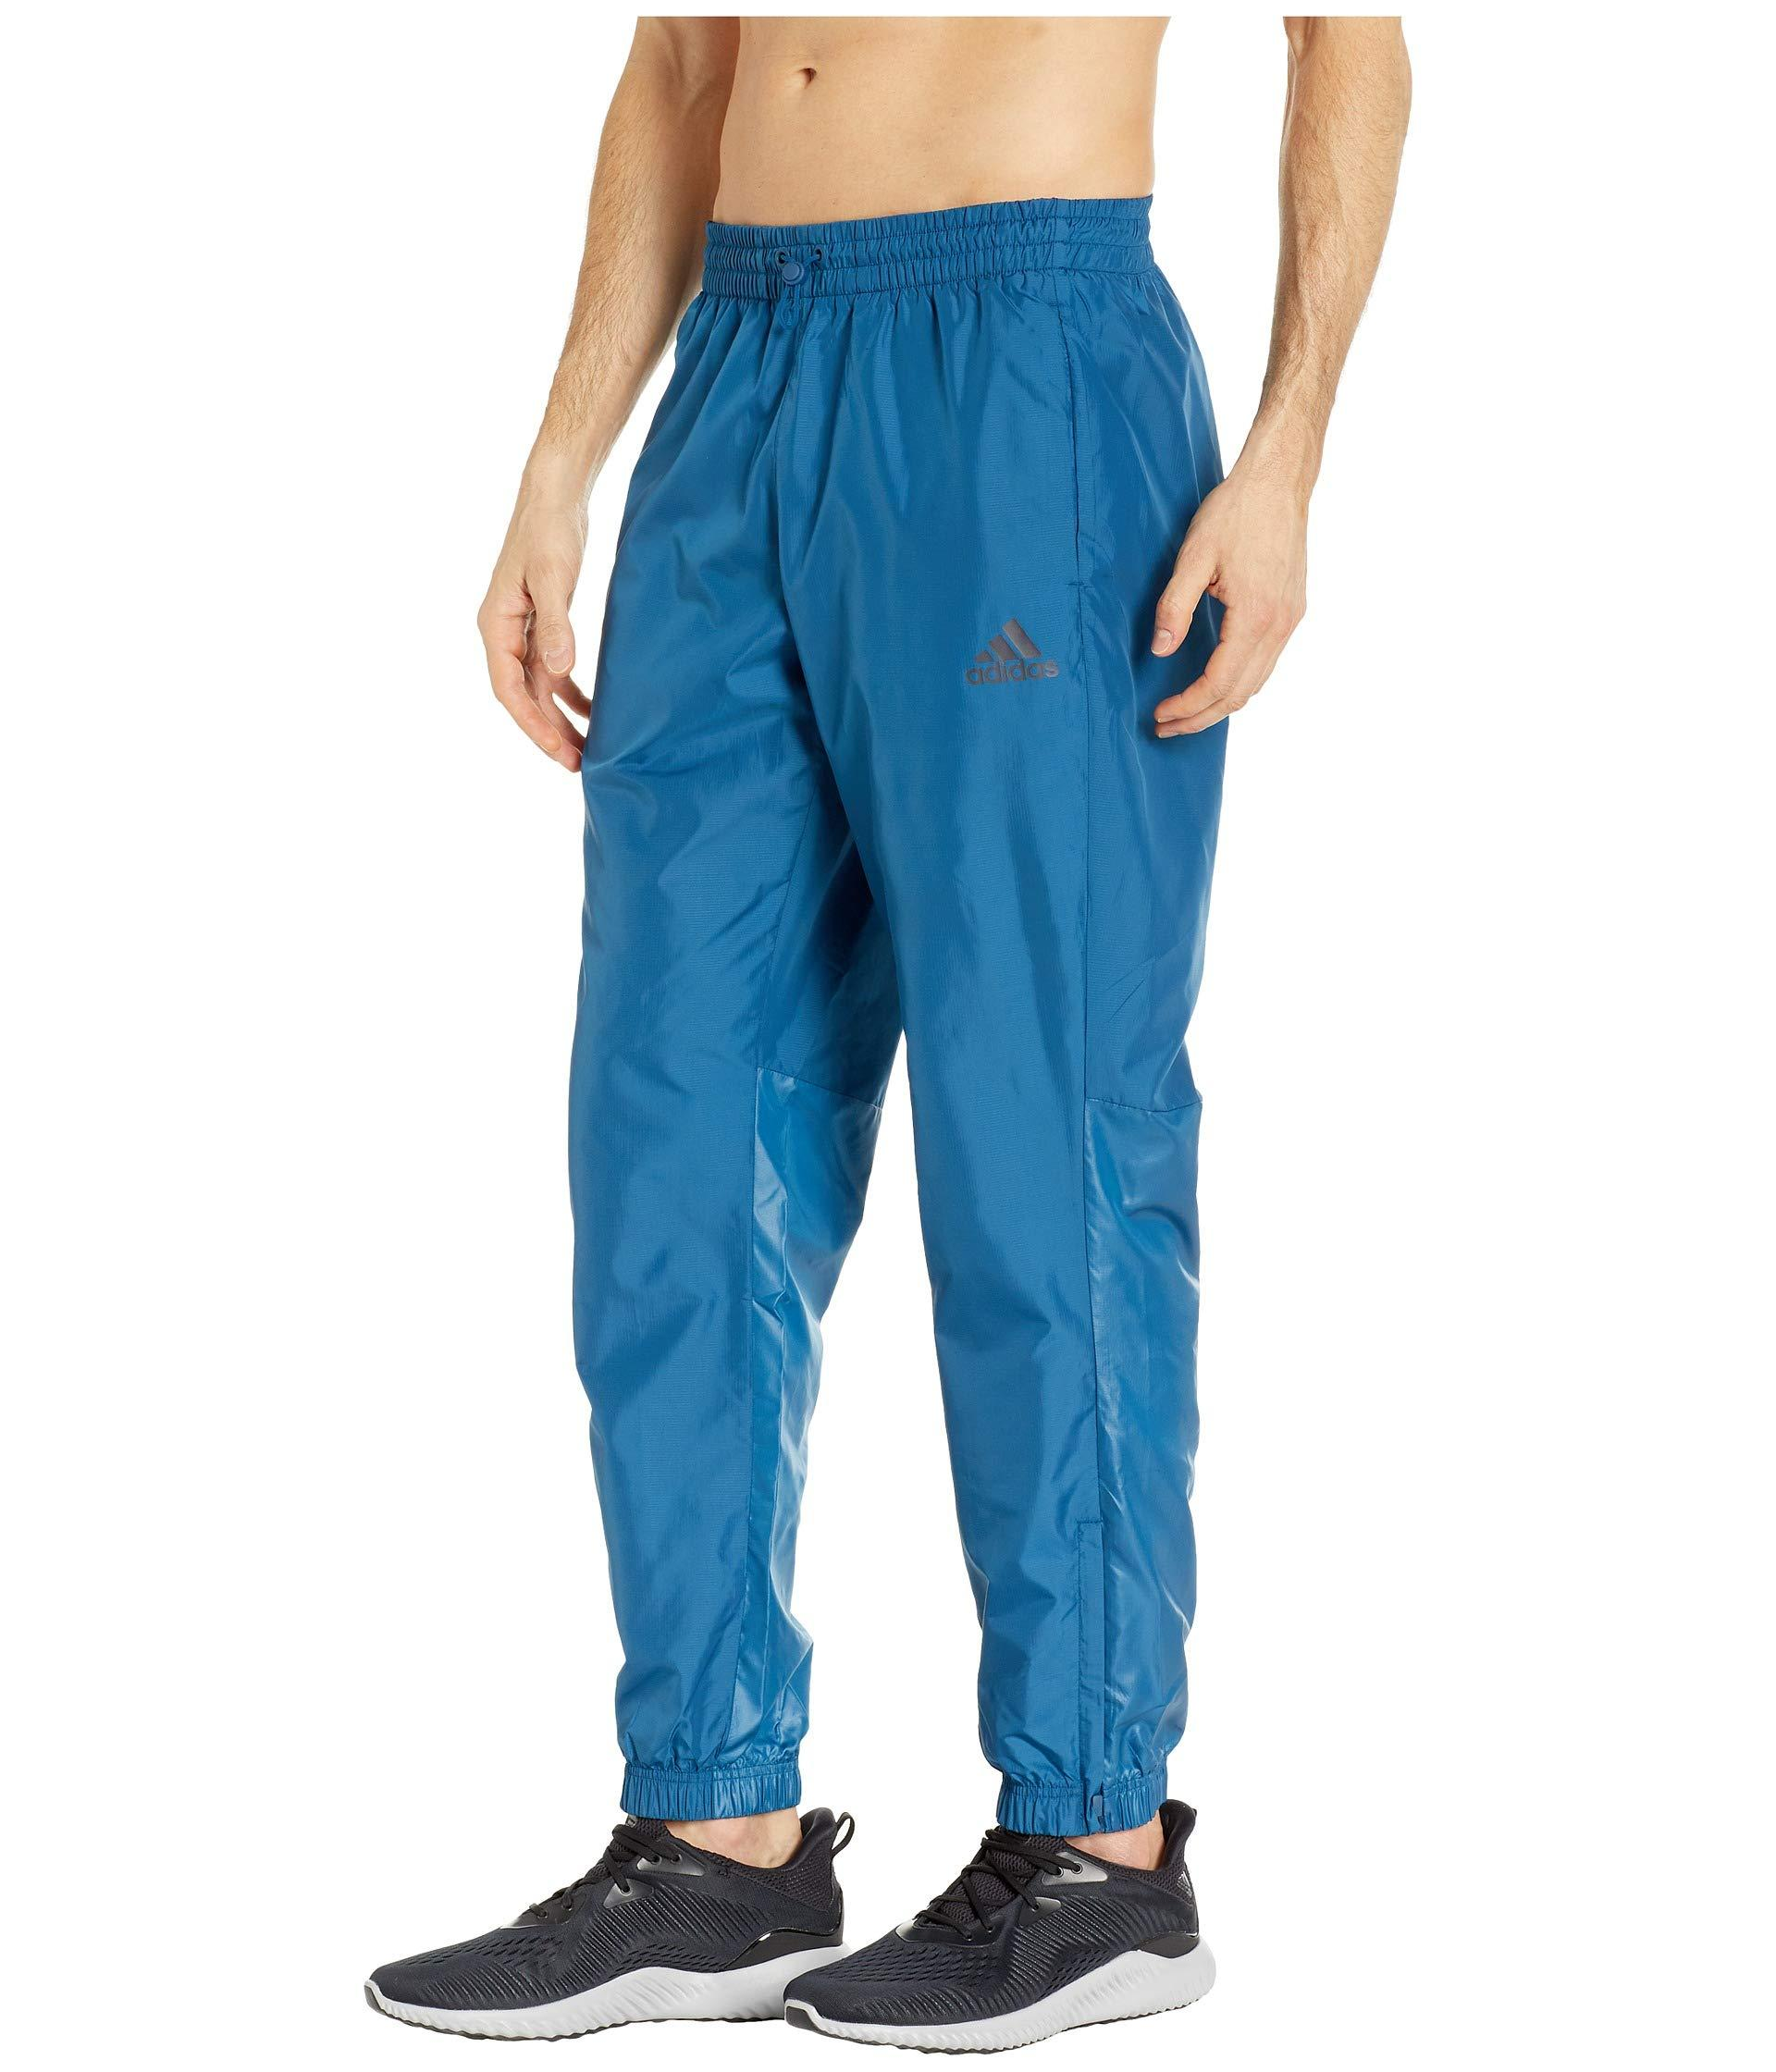 1a83b986172 Lyst - adidas Wind Pants in Blue for Men